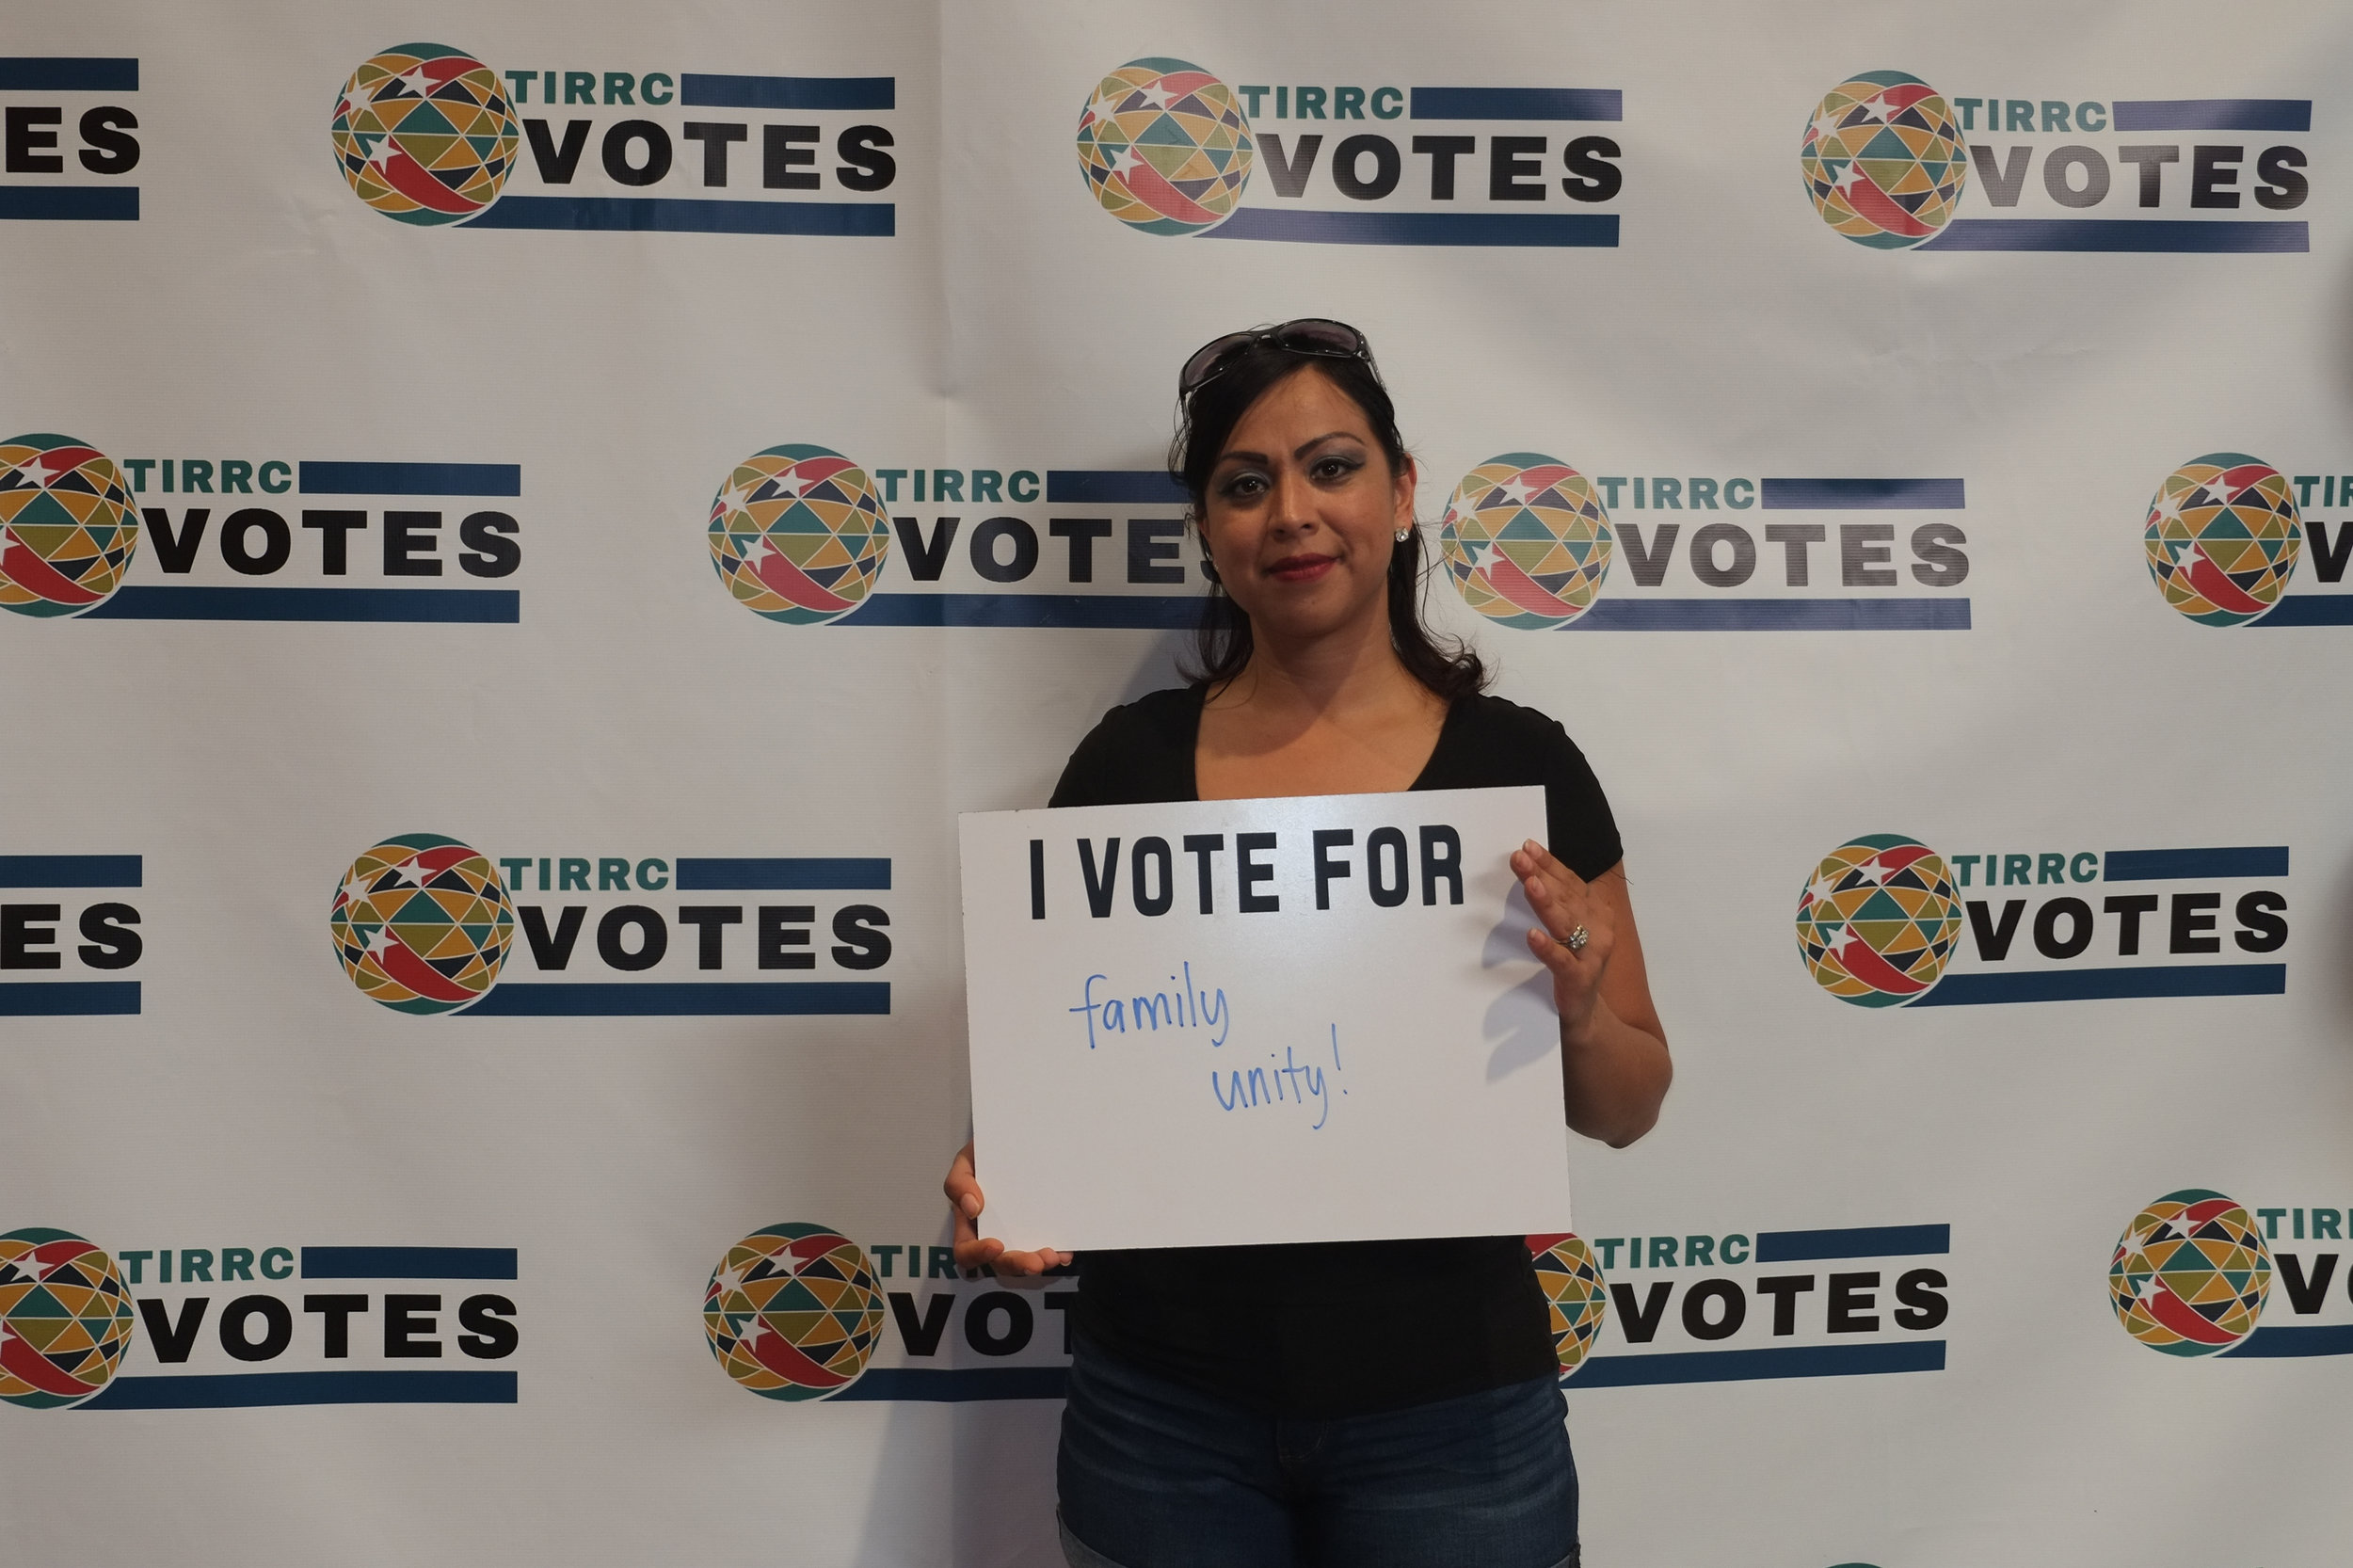 TIRRCVotes-PhotoBooth-2.jpg